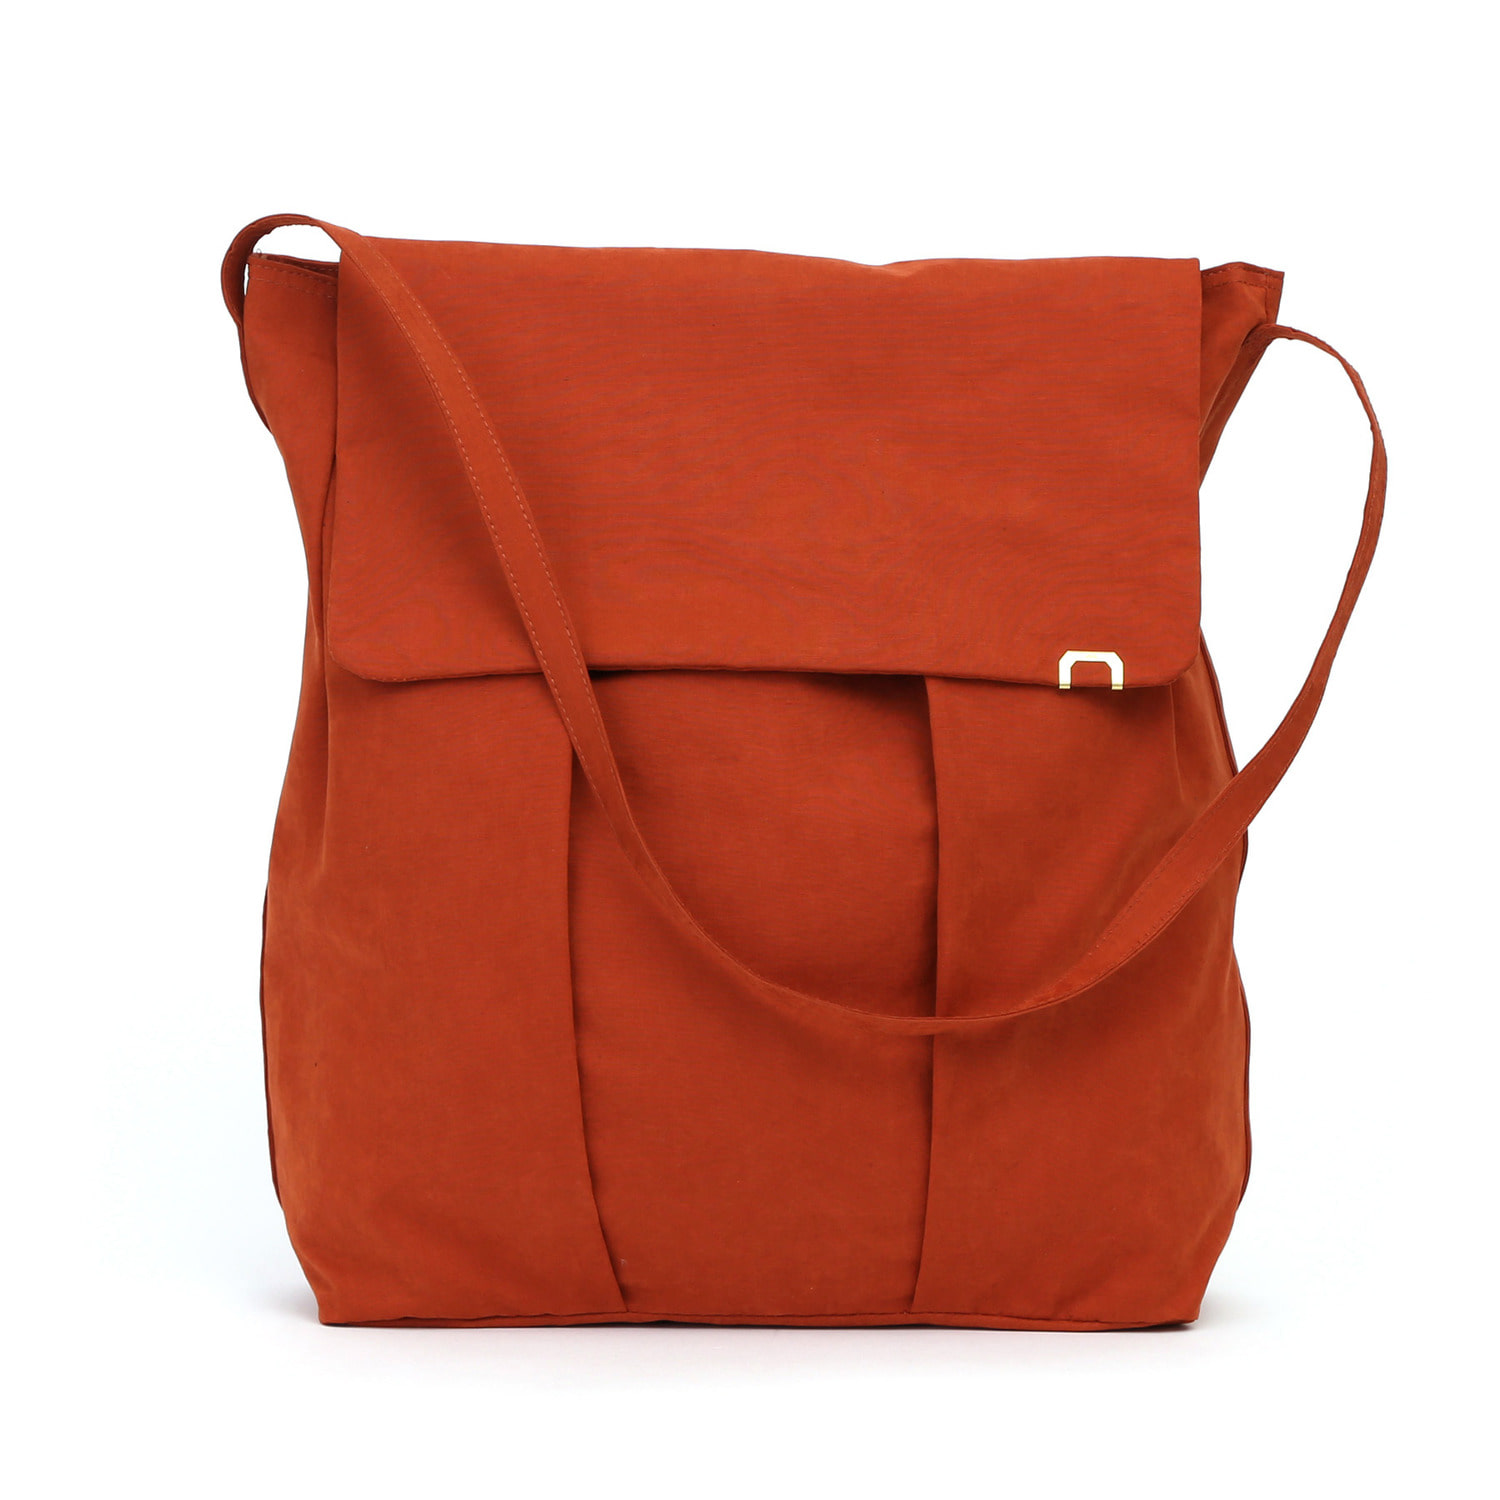 [2차 재입고] LADDER BAG / WRINKLE / NPC / BRICK ORANGE